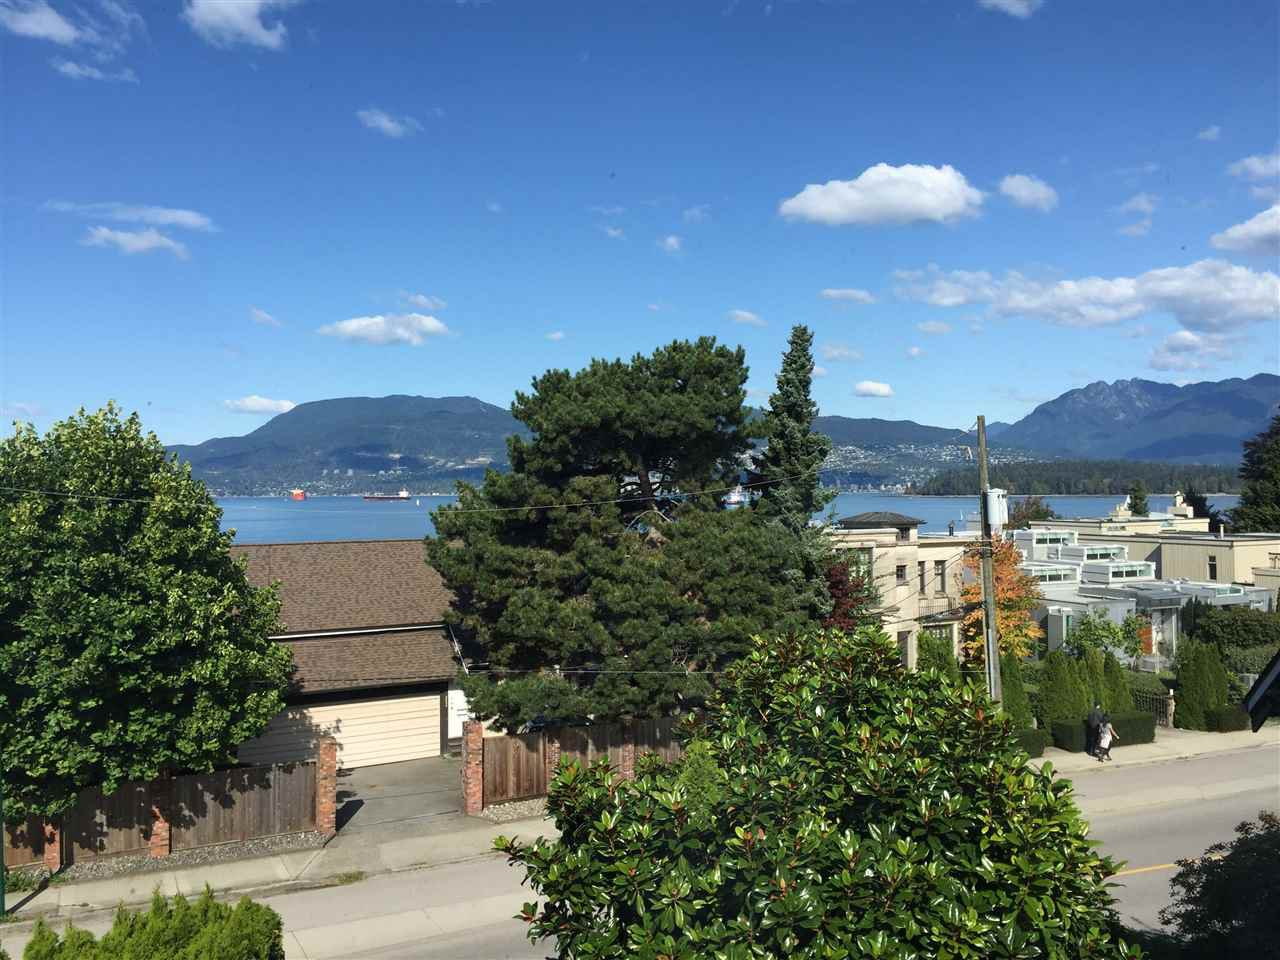 Main Photo: 2640 POINT GREY Road in Vancouver: Kitsilano Townhouse for sale (Vancouver West)  : MLS®# R2412070